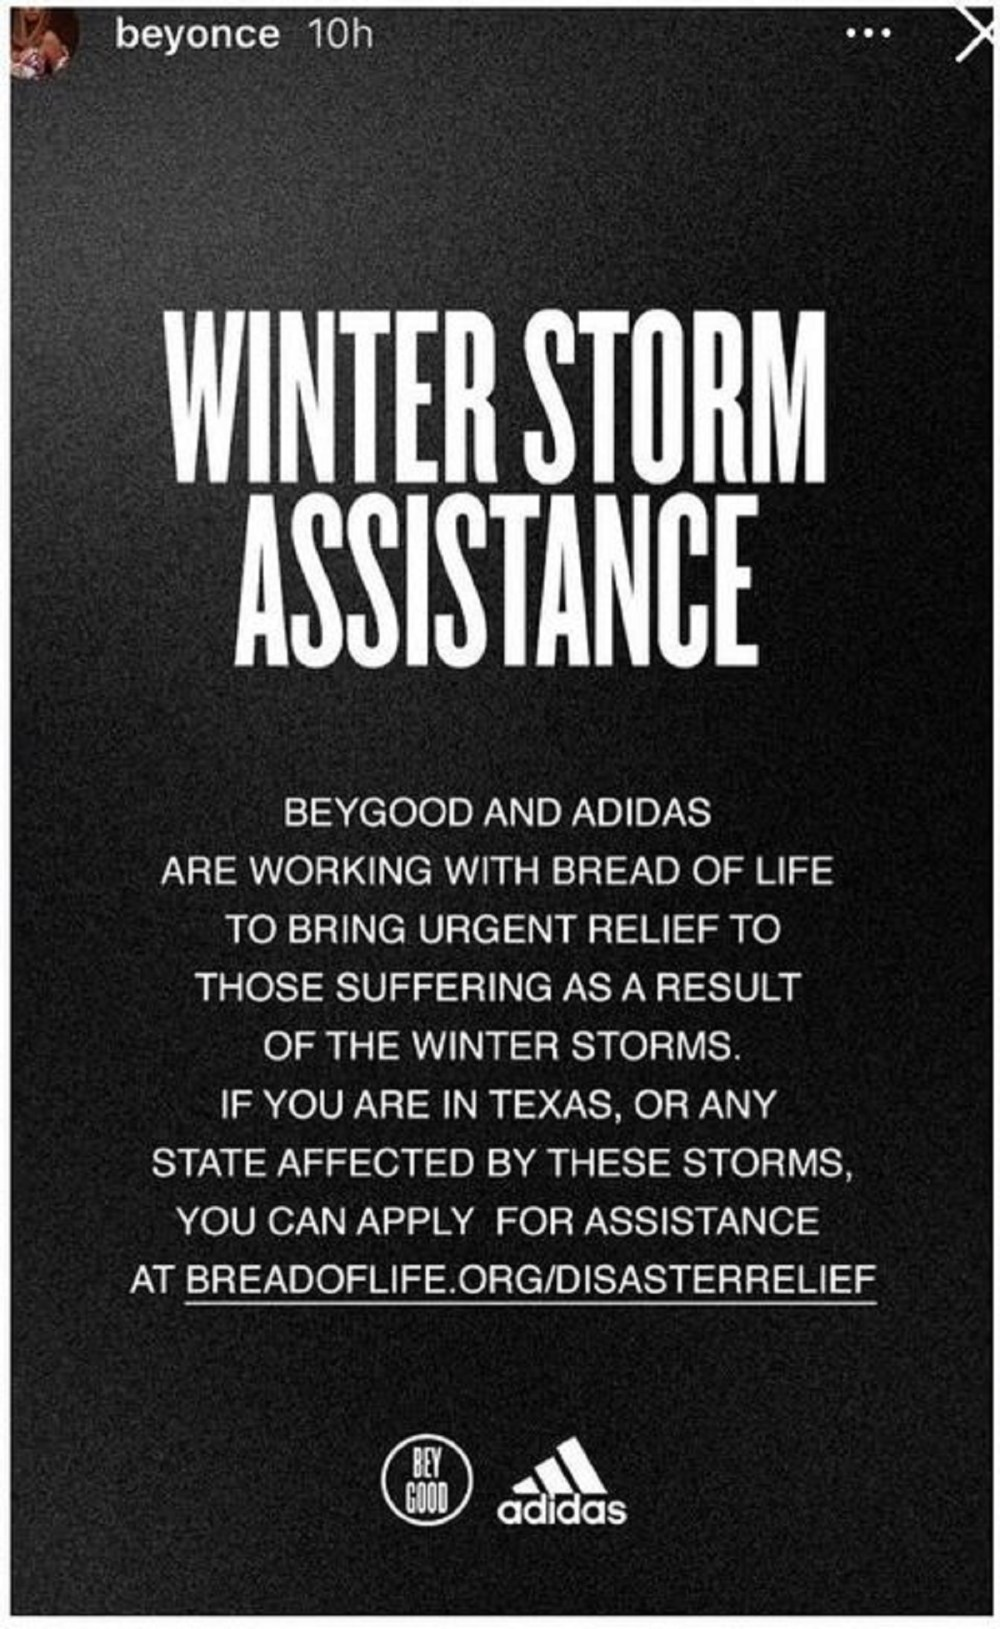 Beyonce Adidas Bread of Life assistance Texas